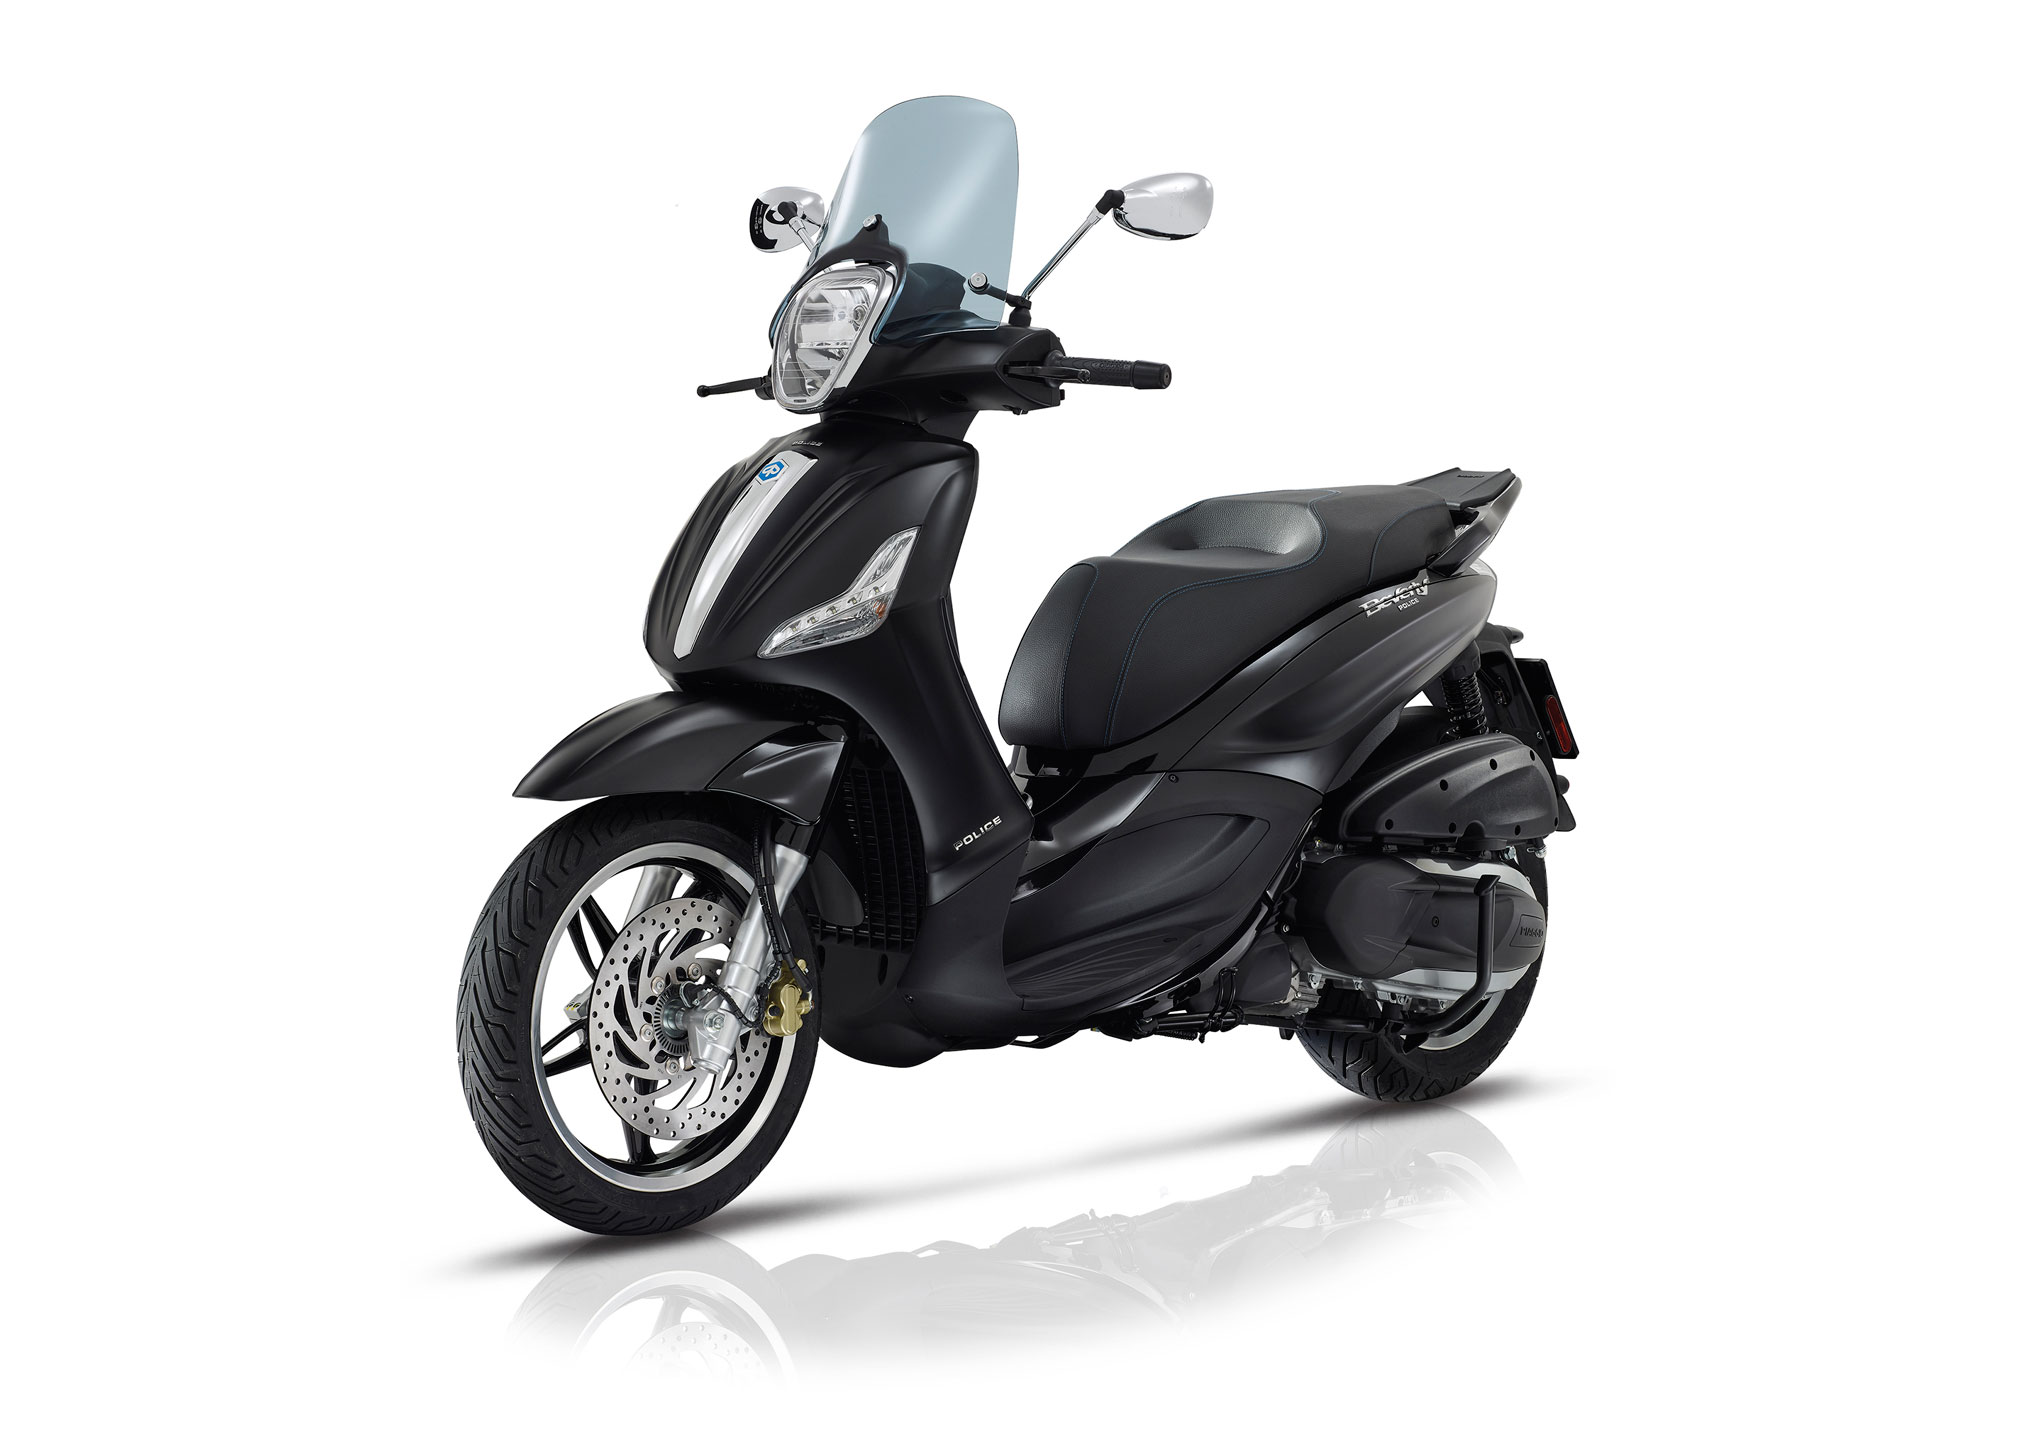 2018 piaggio beverly 300 by police review totalmotorcycle. Black Bedroom Furniture Sets. Home Design Ideas